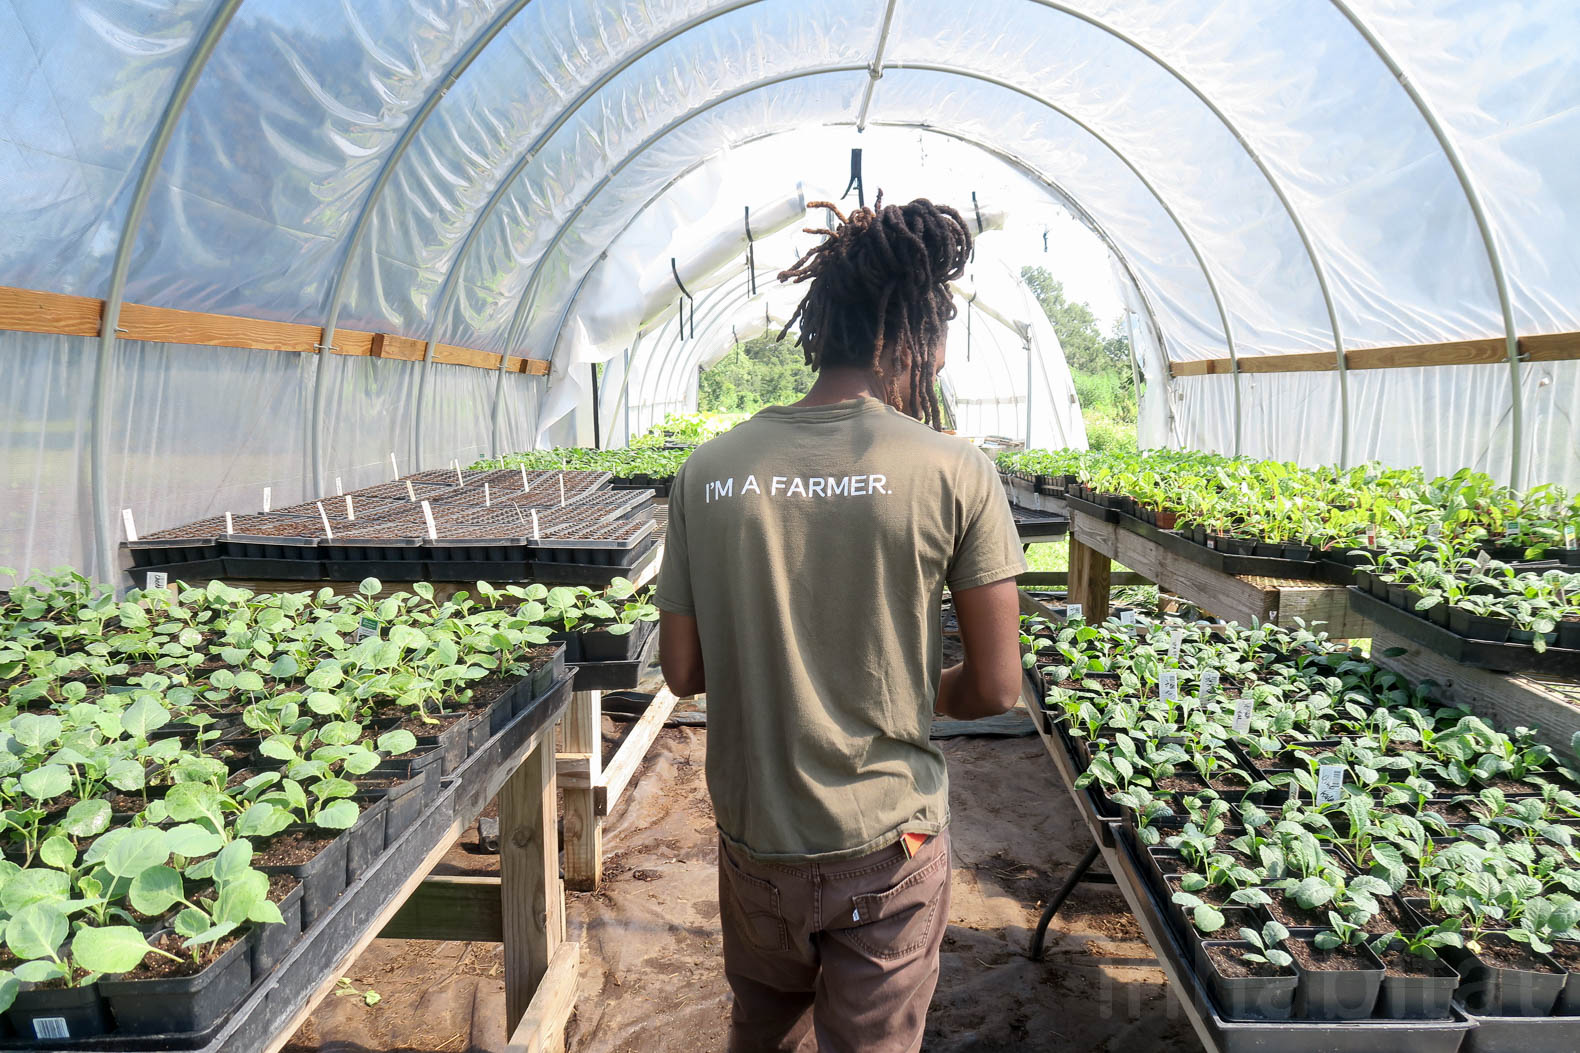 New Orleans golf course transformed into city's biggest urban farm with an Eco-Campus